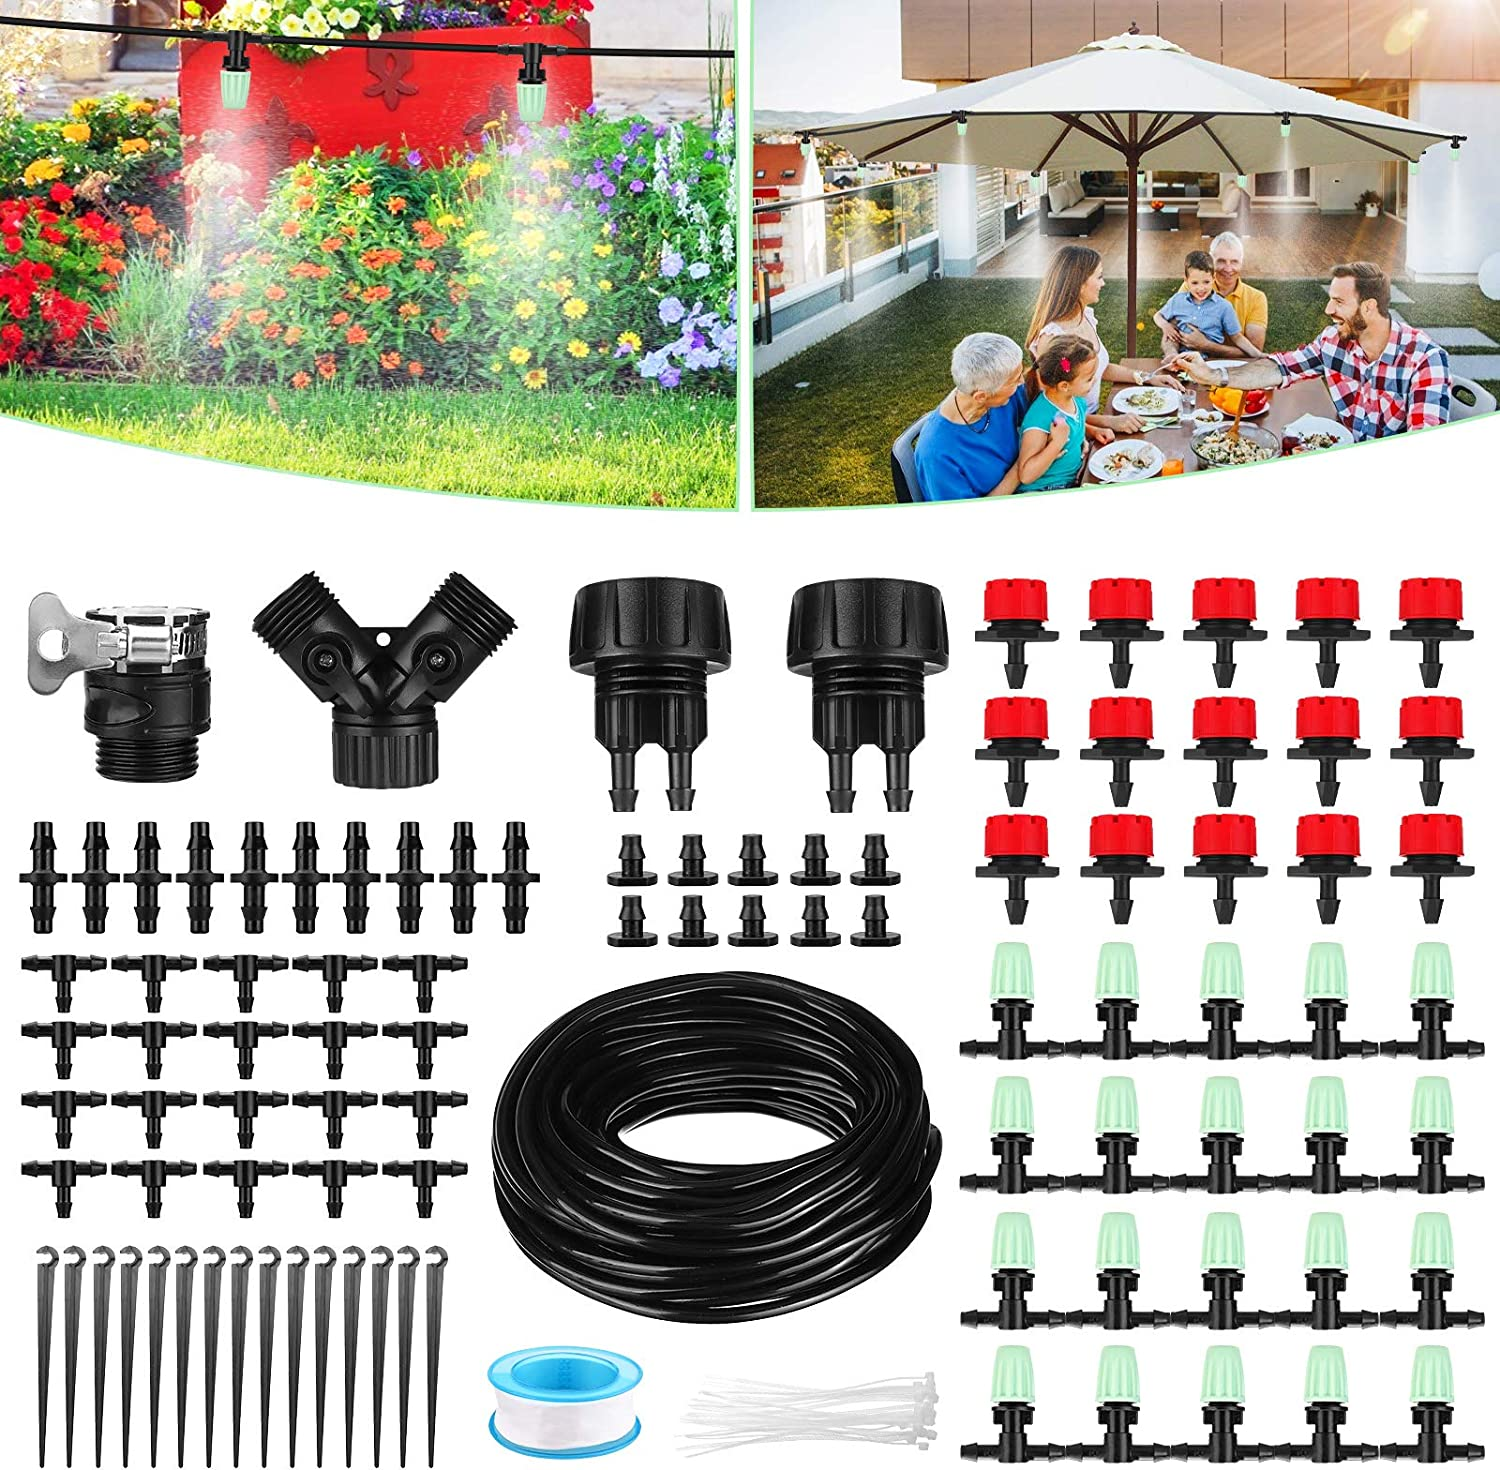 Drip Irrigation System, NASUM 82Ft/25M Drip Irrigation Kit with Adjustable Misting Nozzles& Drippers Automatic DIY Garden Irrigation System for Flower Bed, Patio, Greenhouse Gifts for Father's Day